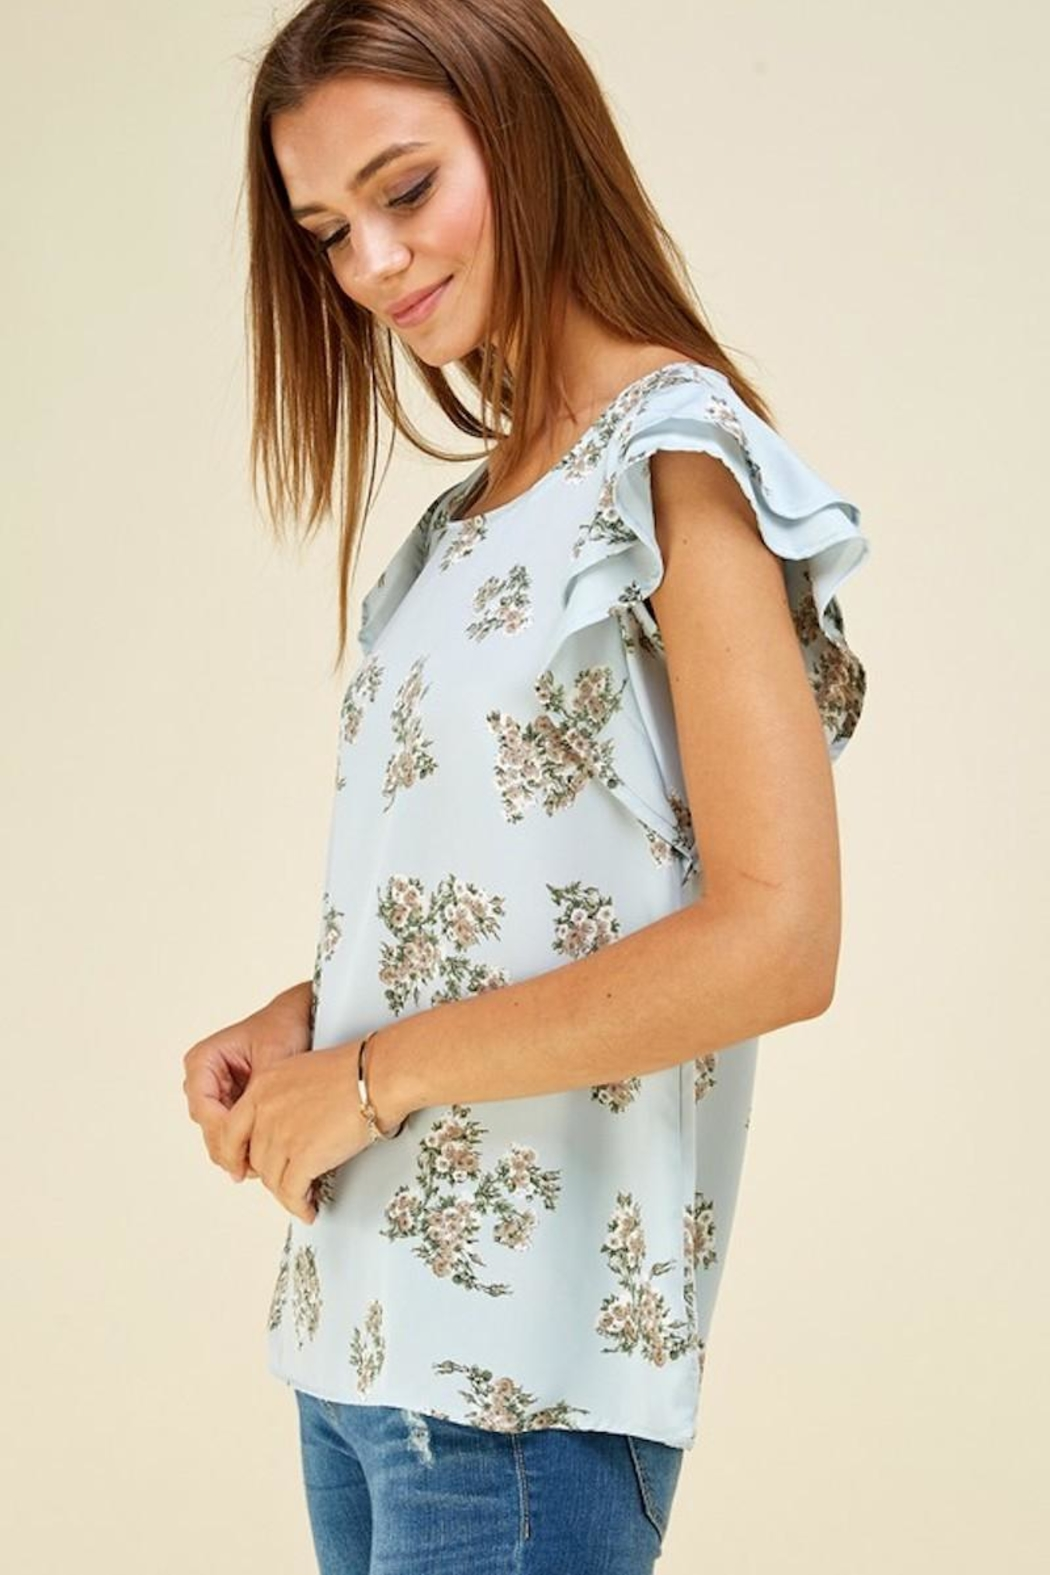 Les Amis Ava's Blue Floral Flutter Top - Side Cropped Image